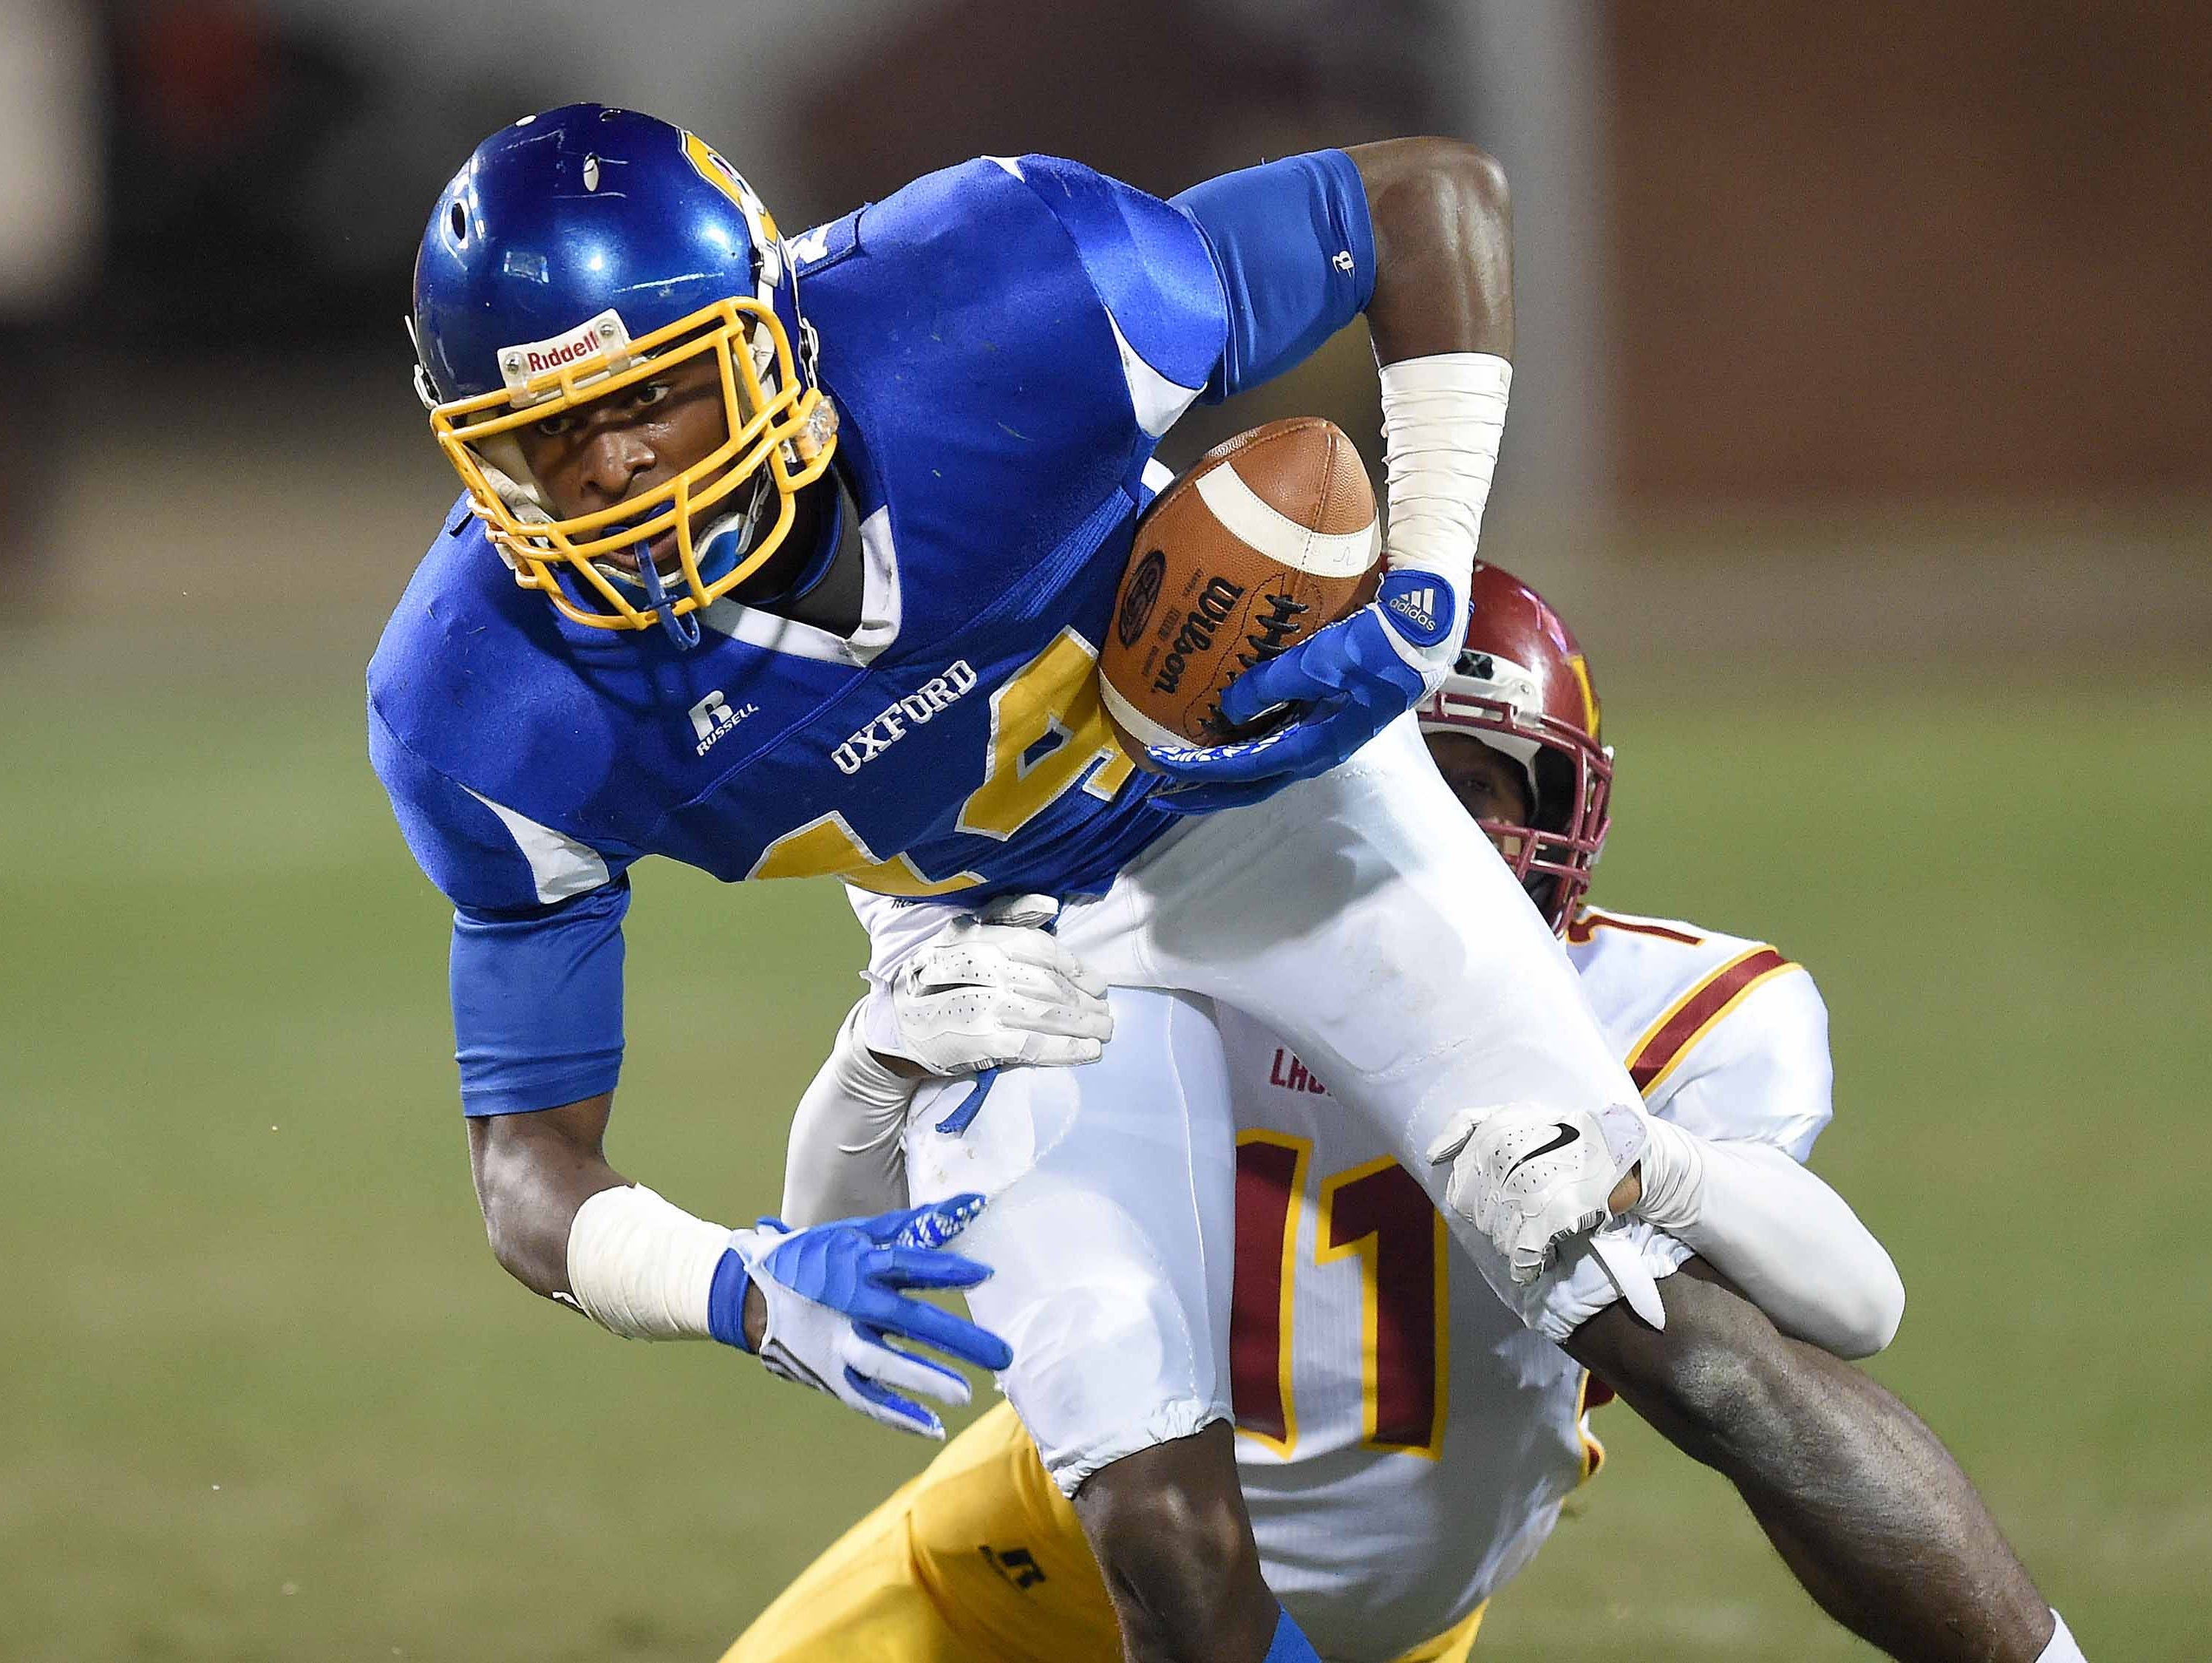 Oxford wide receiver Dekaylin Metcalf tries to break free from Laurel's Shemar Keyes in the MHSAA football state championships on Saturday, December 6, 2014, at Davis Wade Stadium on the Mississippi State University campus in Starkville.